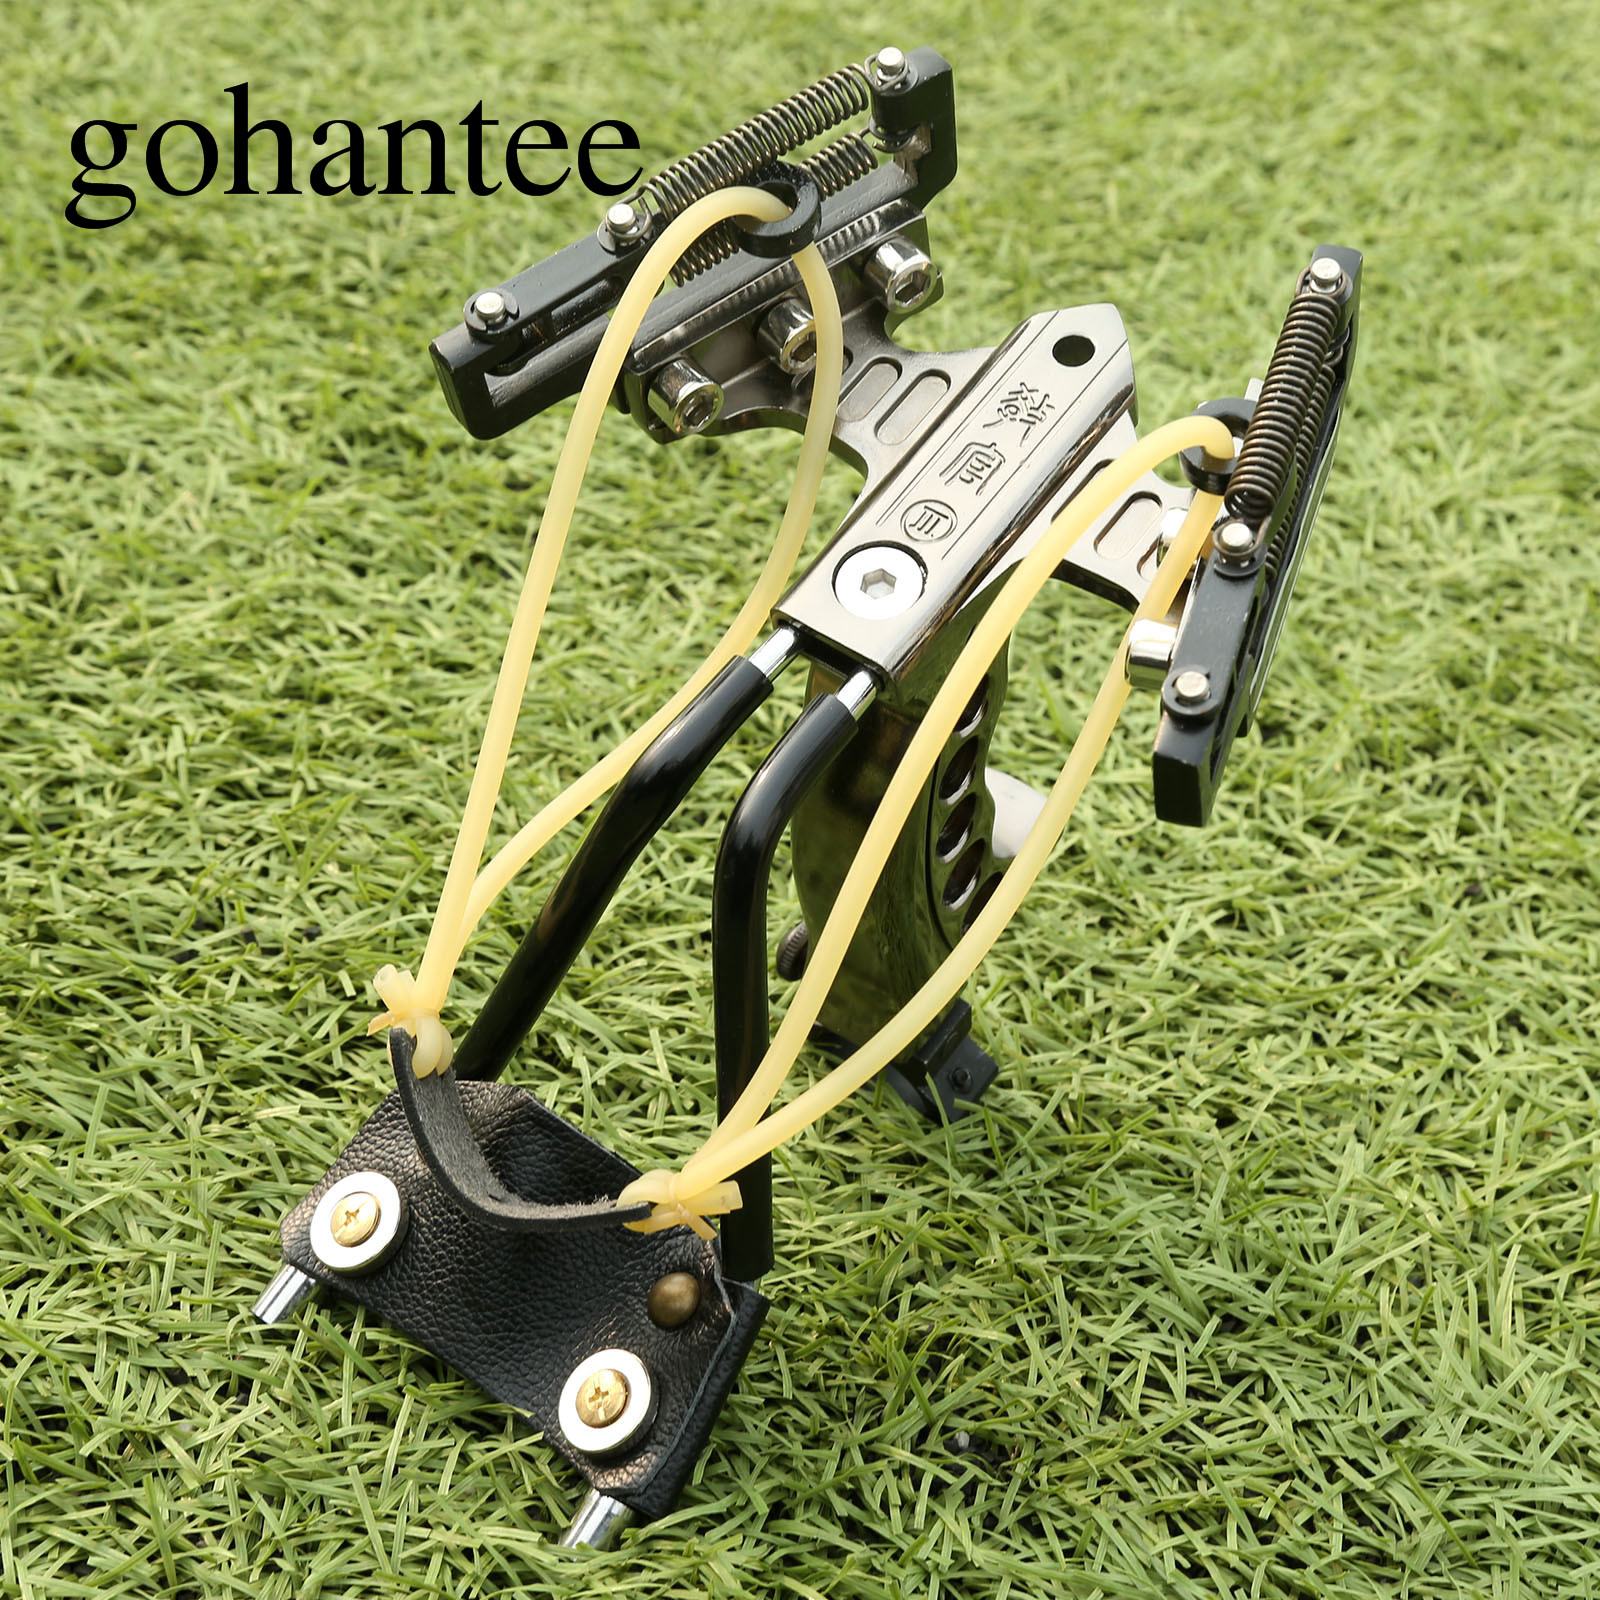 gohantee Tactical Heavy Duty Stainless Steel Slingshot with 4 Spring Wrist Brace Sling Shots Outdoor Hunting Slingshots Catapult shockproof kids children save protective